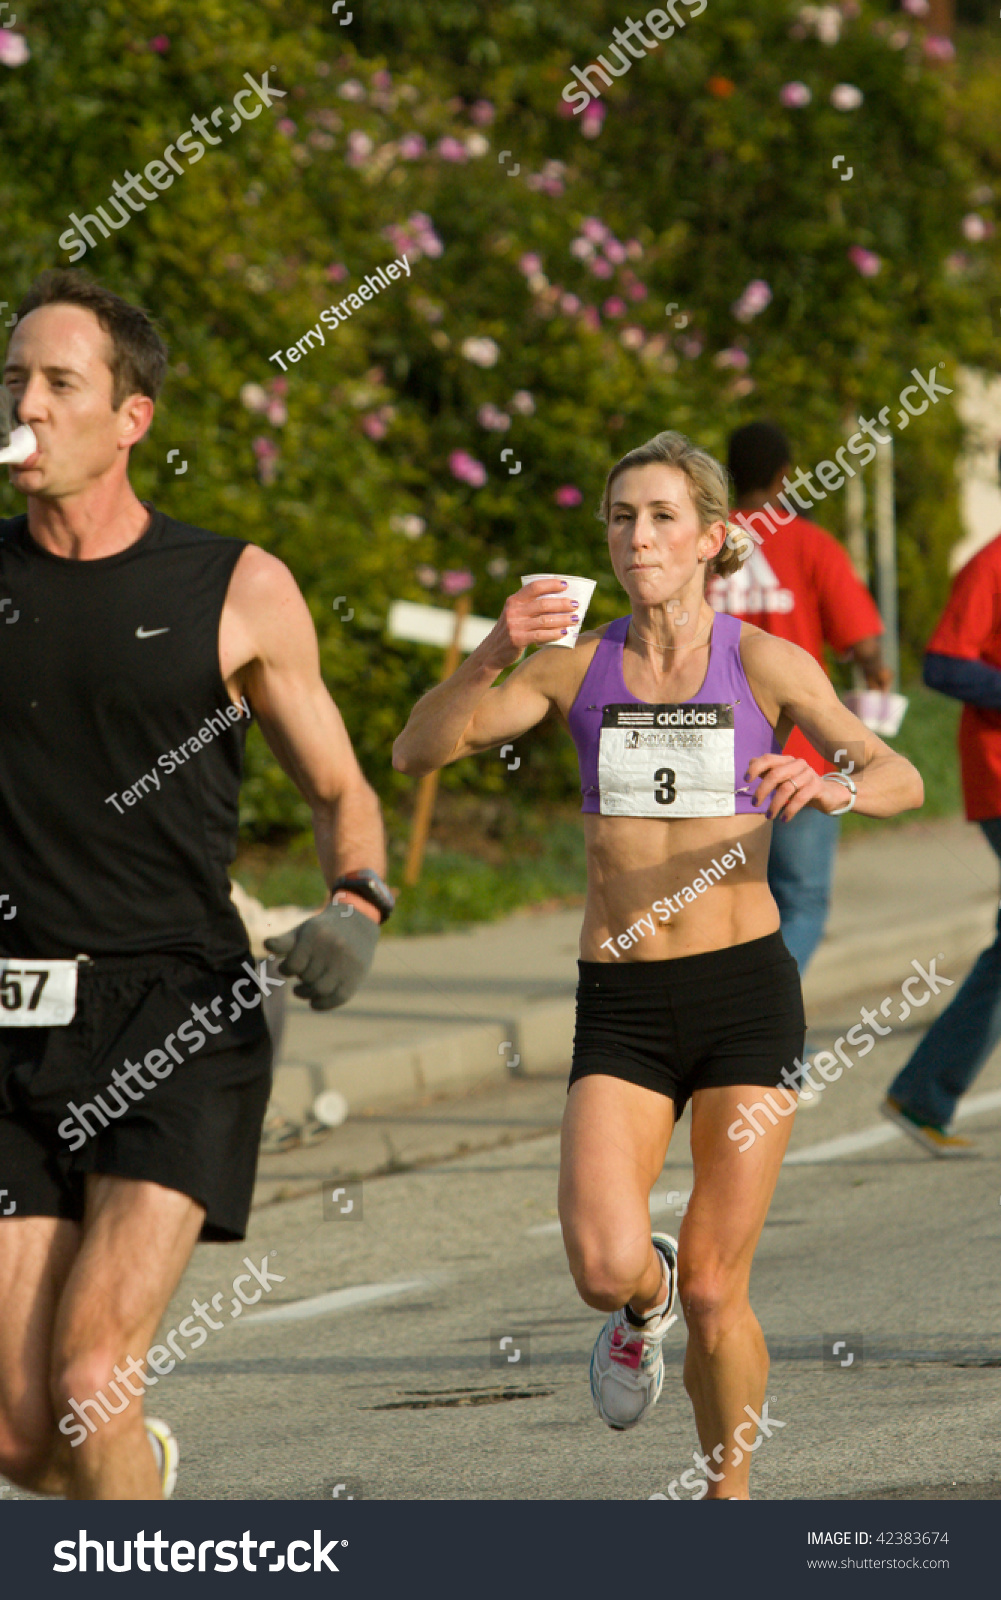 SANTA BARBARA, CA - DEC. 06: Andrea McLarty (1st female, 11th) is refreshed  at a water stop at the Select Staffing Santa Barbara International Marathon  on ...